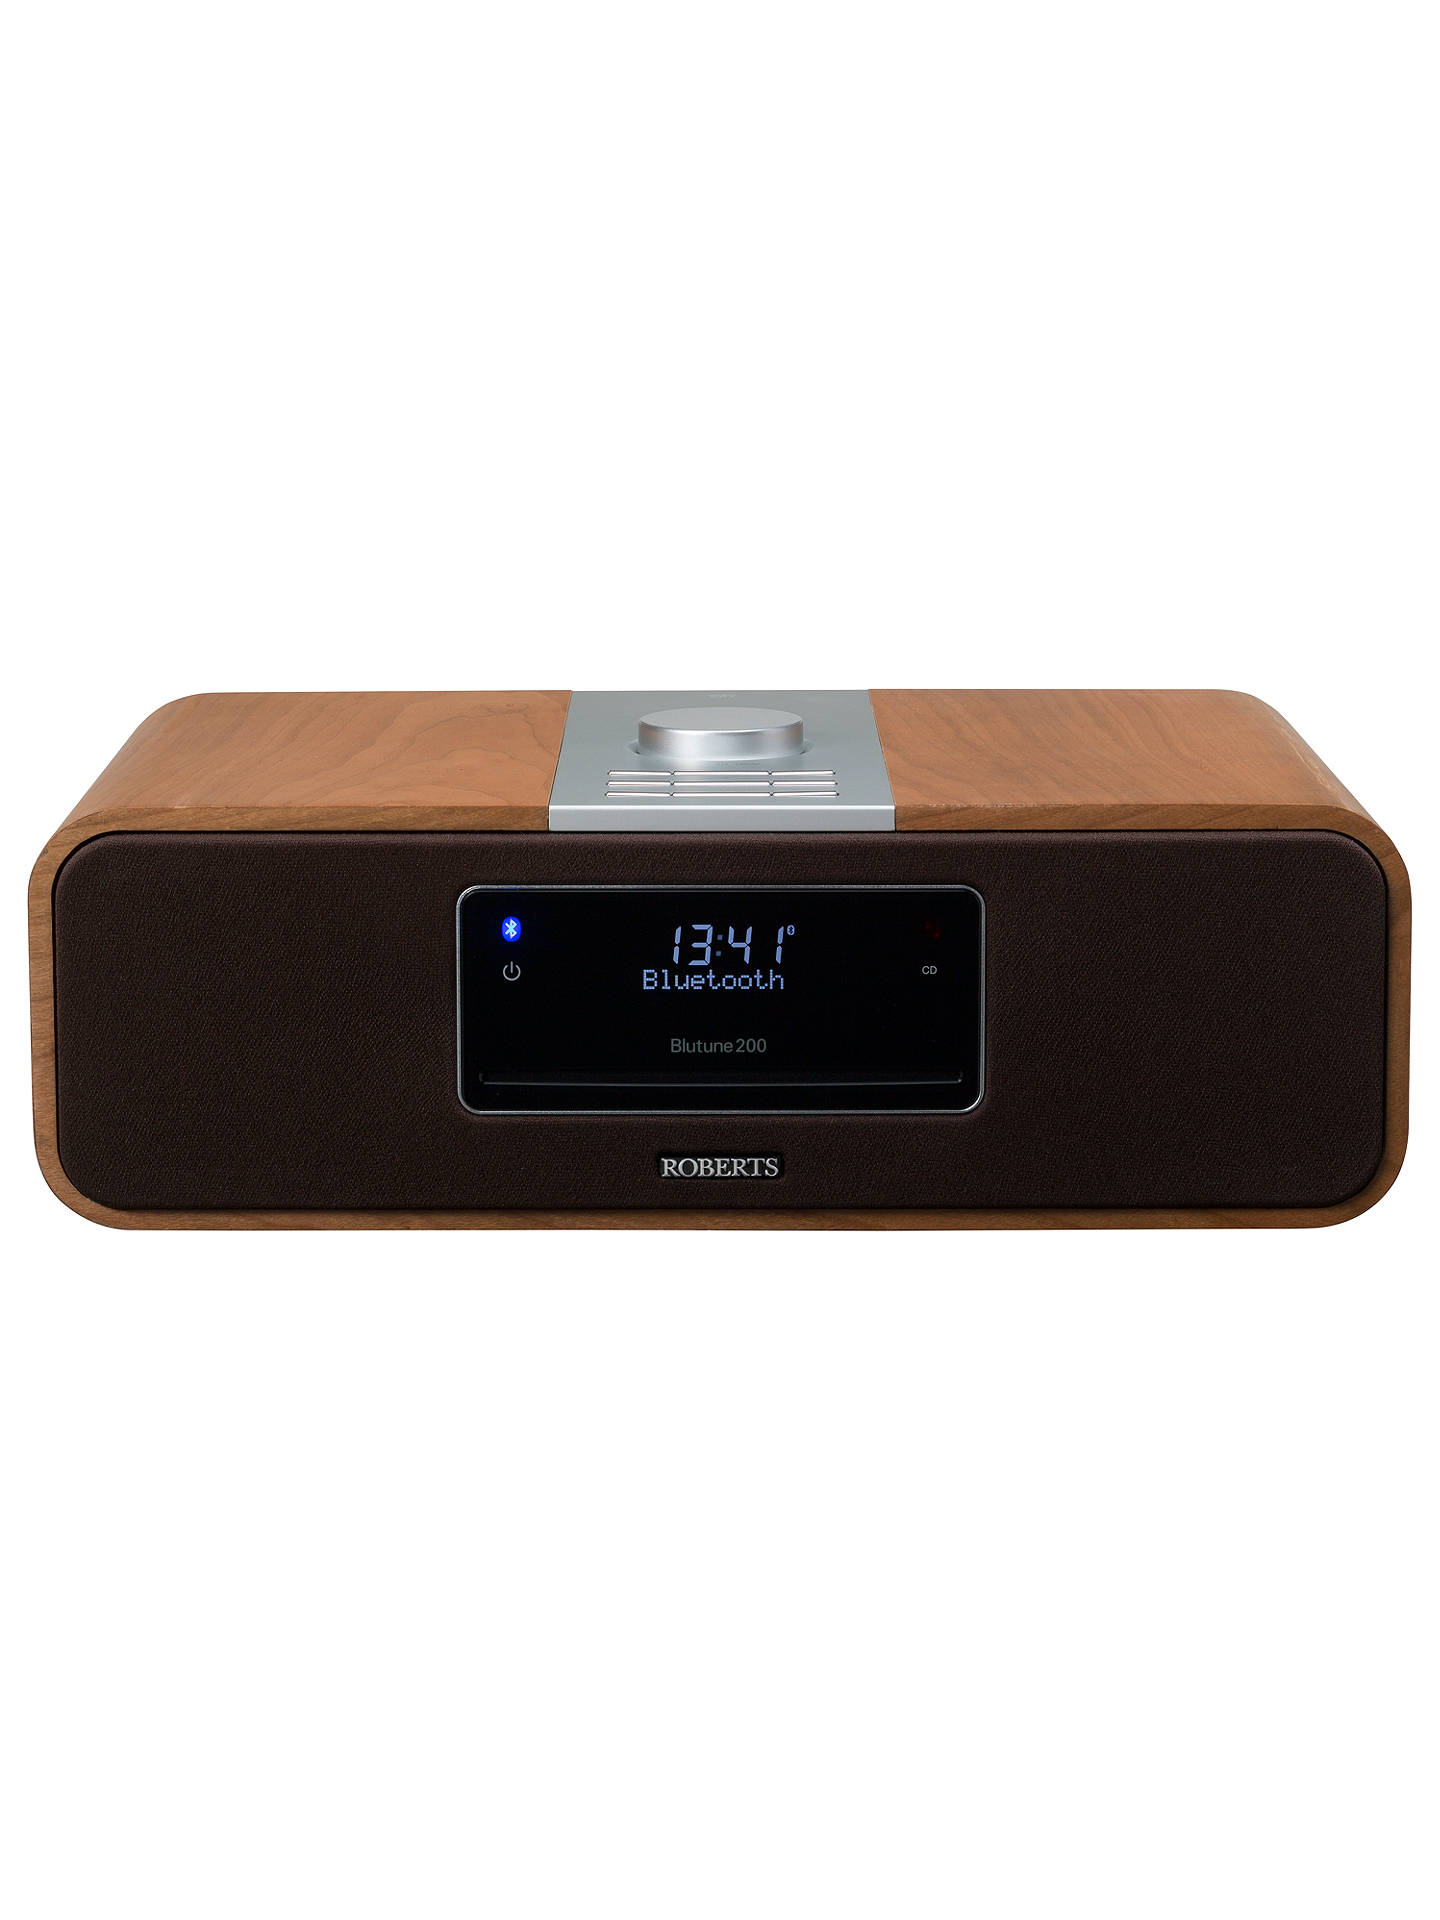 BuyROBERTS Blutune 200 DAB/FM/CD Bluetooth Radio, Cherry Wood Online at johnlewis.com